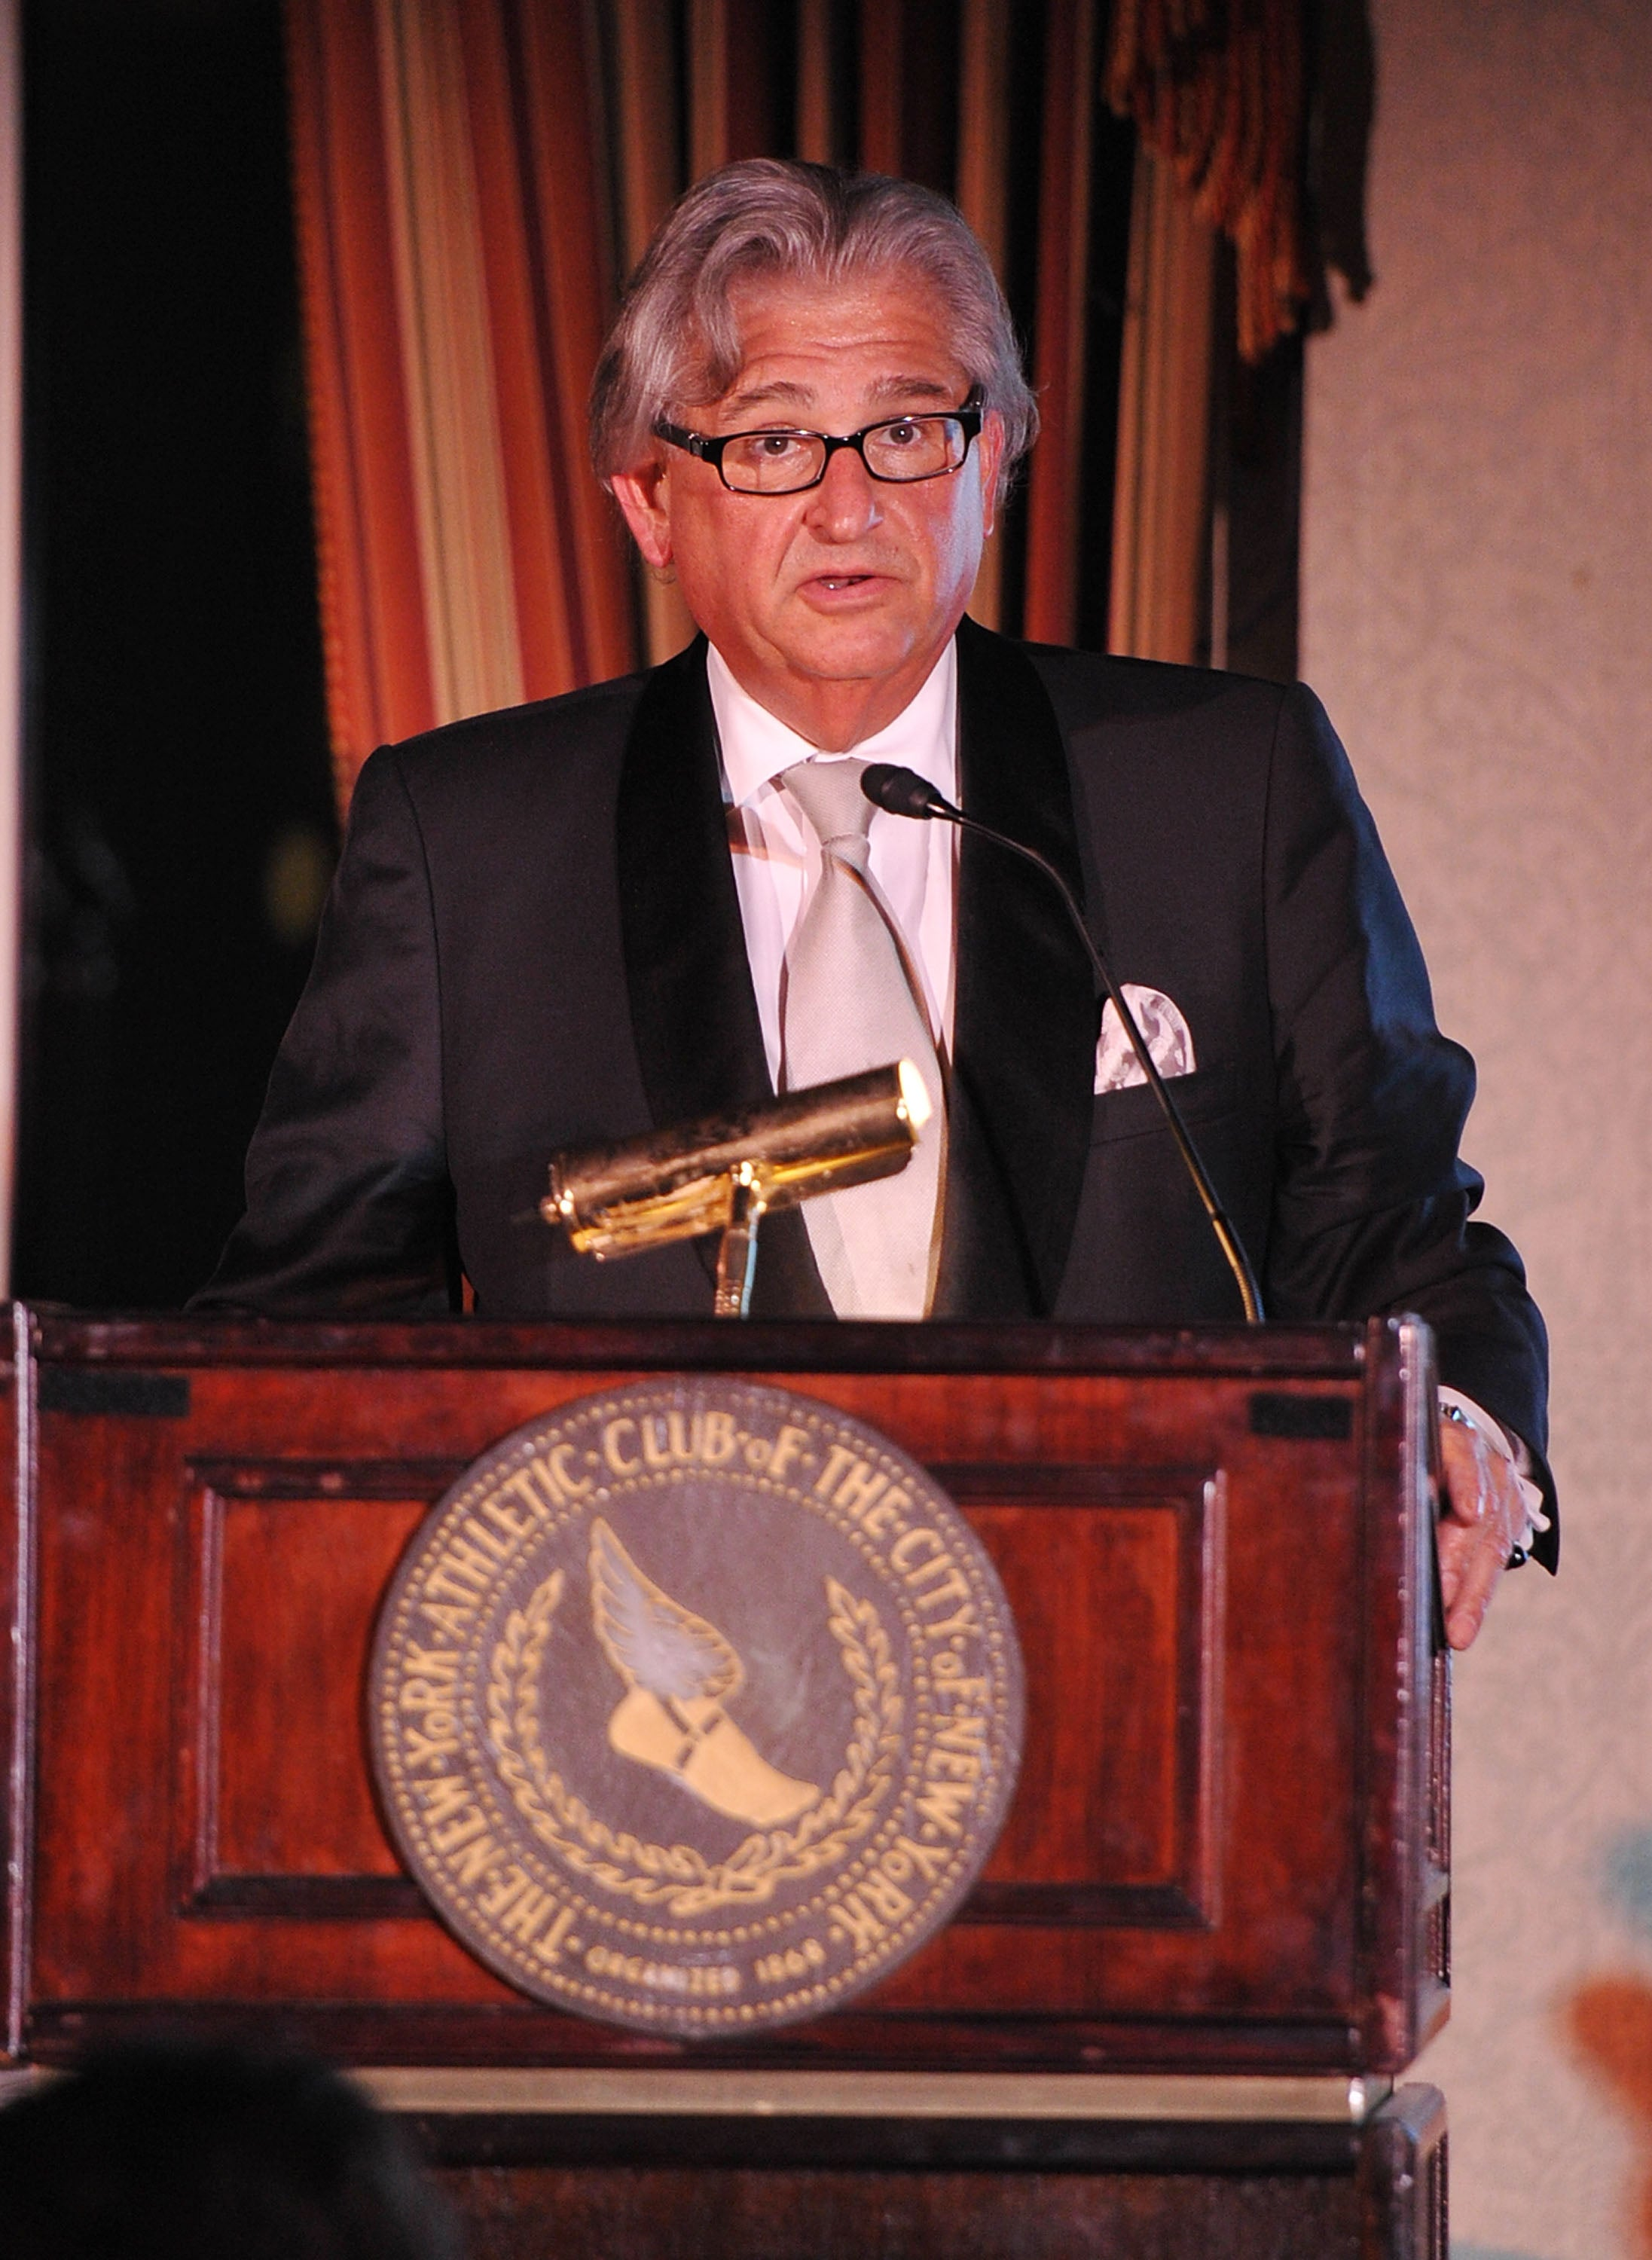 A man with silver hair dressed in a suit speaks at a lectern.